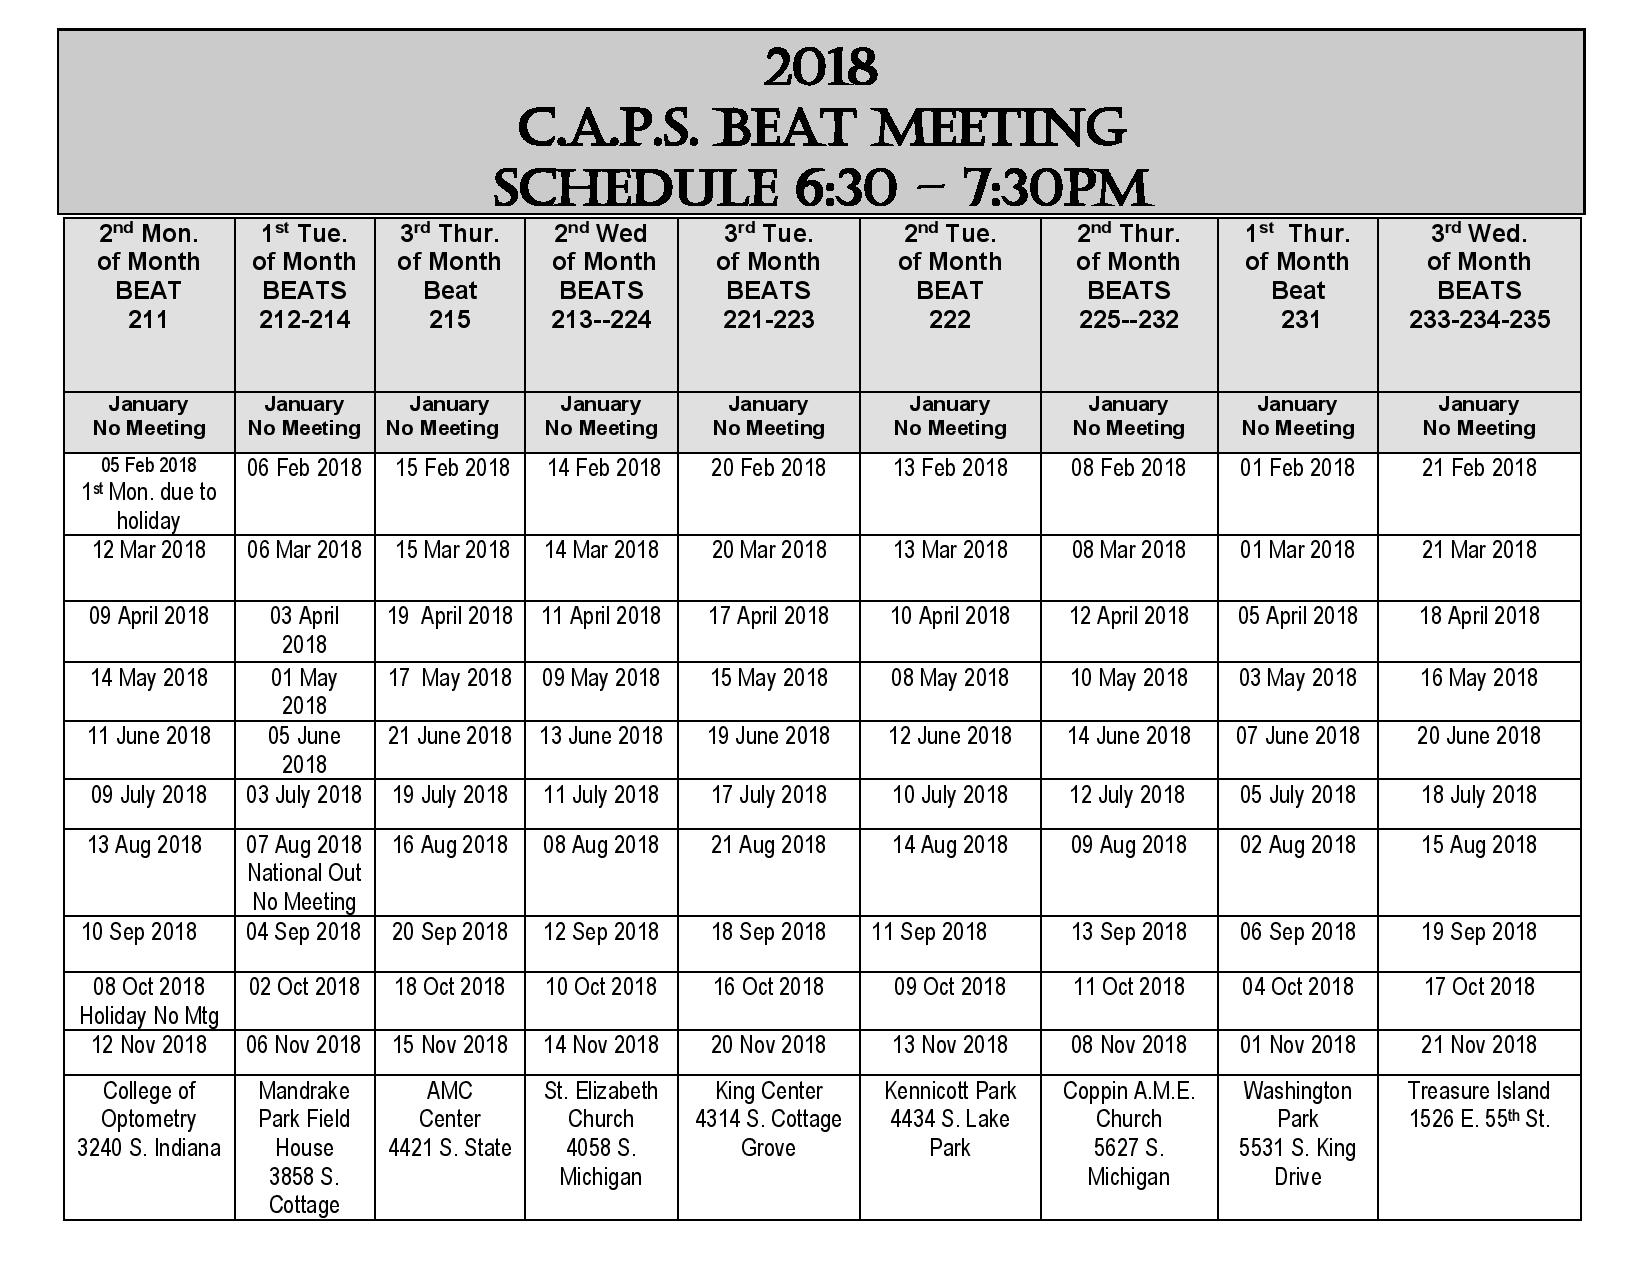 002 DISTRICT CAPS BEAT MEETING SCHEDULE 2018-page-001AXSADS